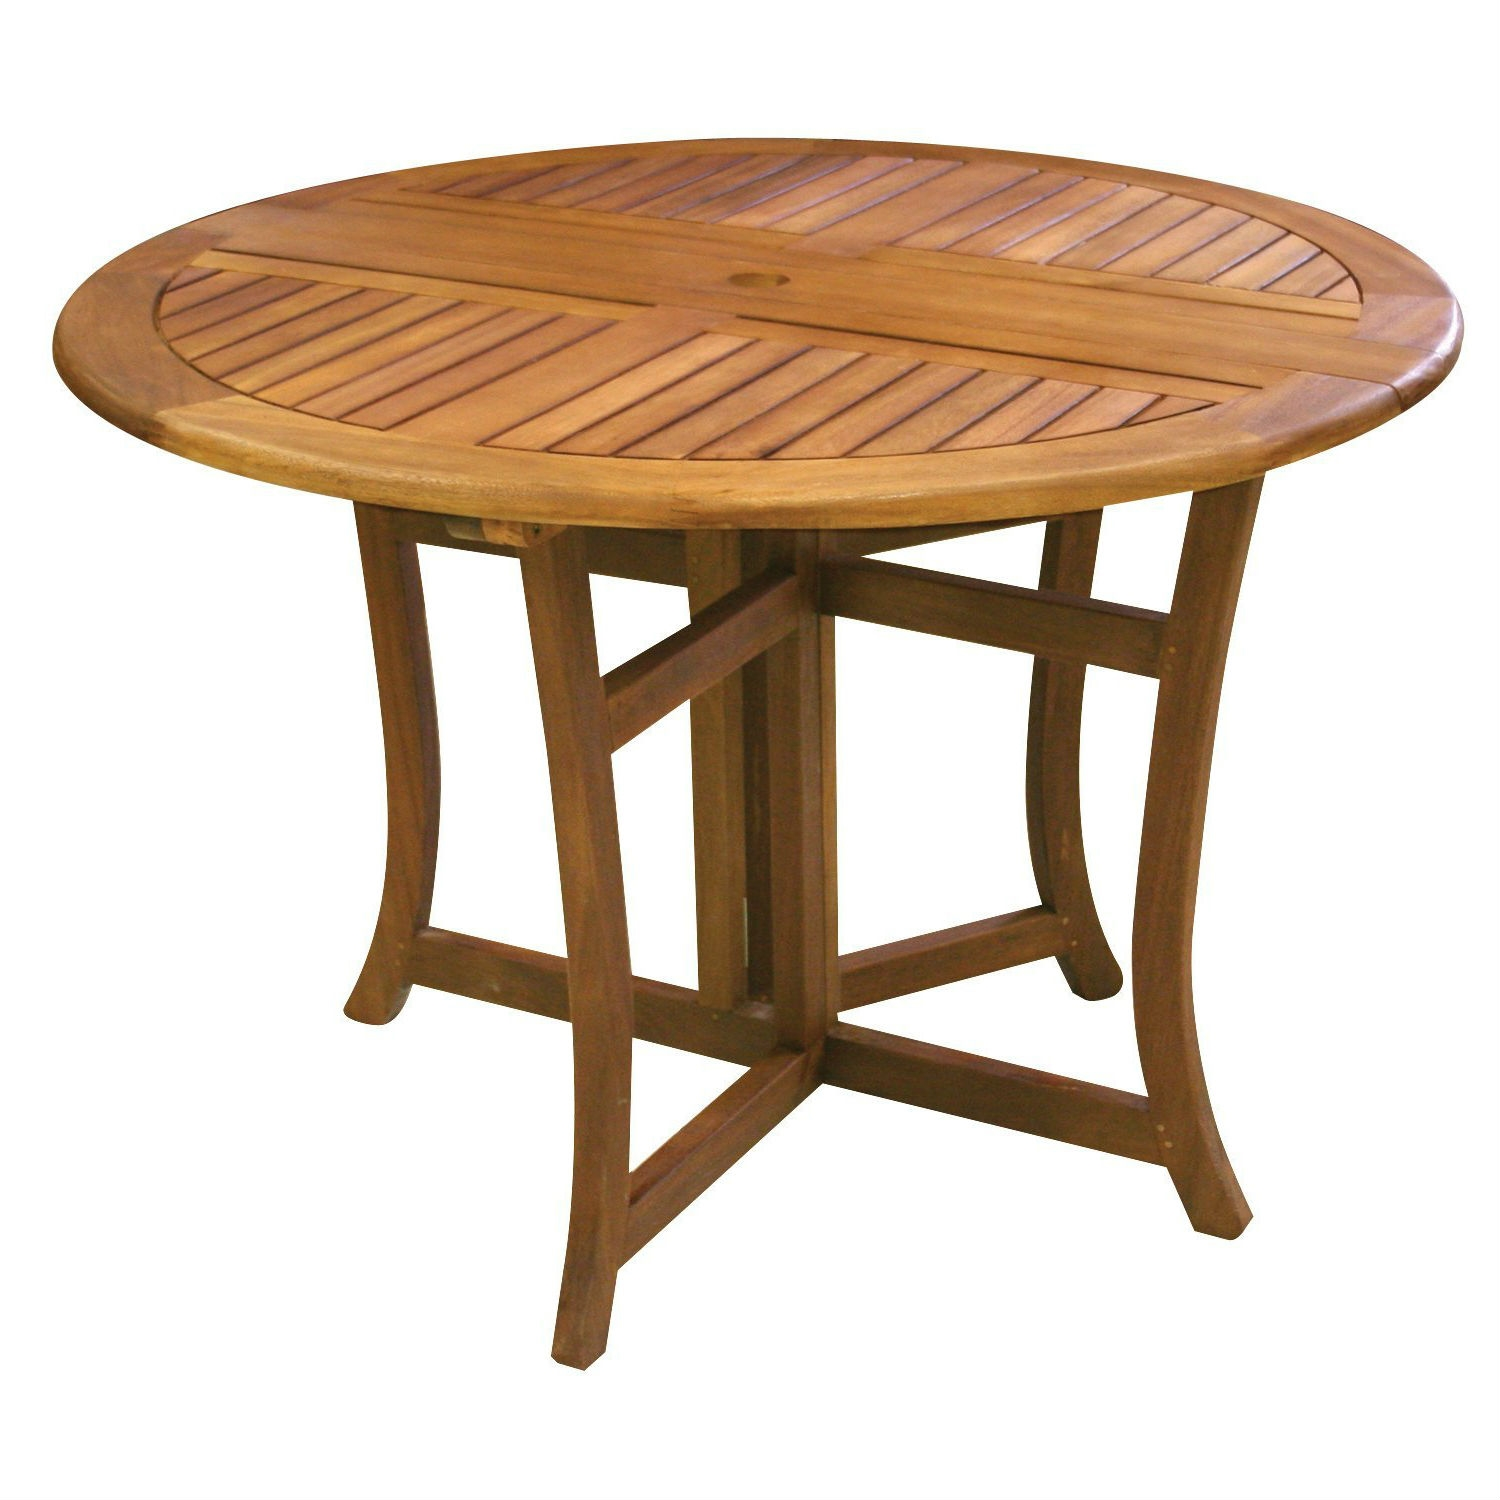 Outdoor Folding Wood Patio Dining Table 43 Inch Round With Umbrella Hole |  FastFurnishings.com